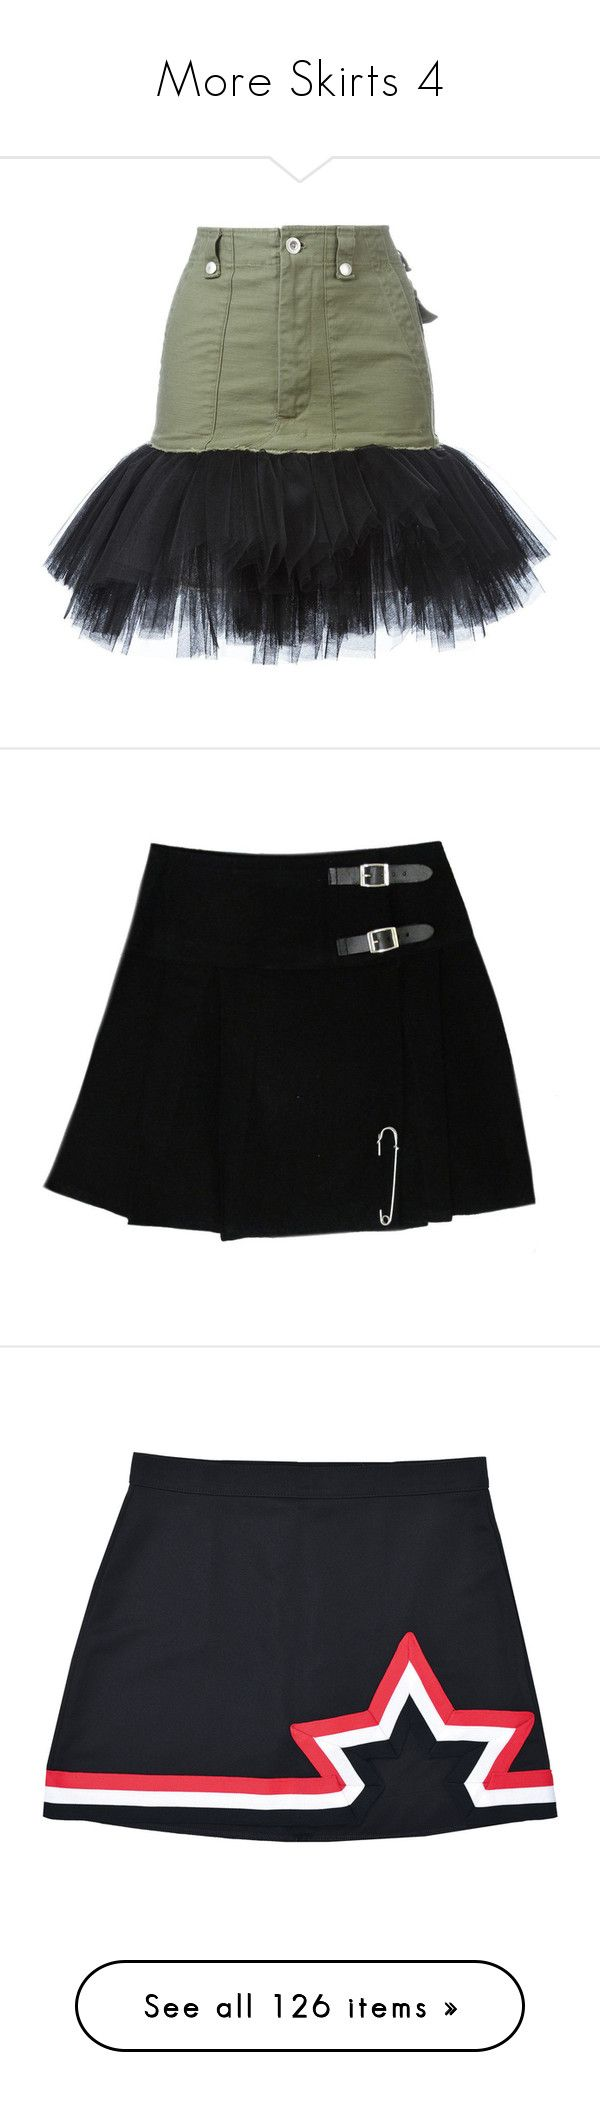 """""""More Skirts 4"""" by thesassystewart on Polyvore featuring skirts, green, green tulle skirt, green skirt, tulle skirts, mini skirts, bottoms, mini skirt, pin skirt and multi color skirt"""